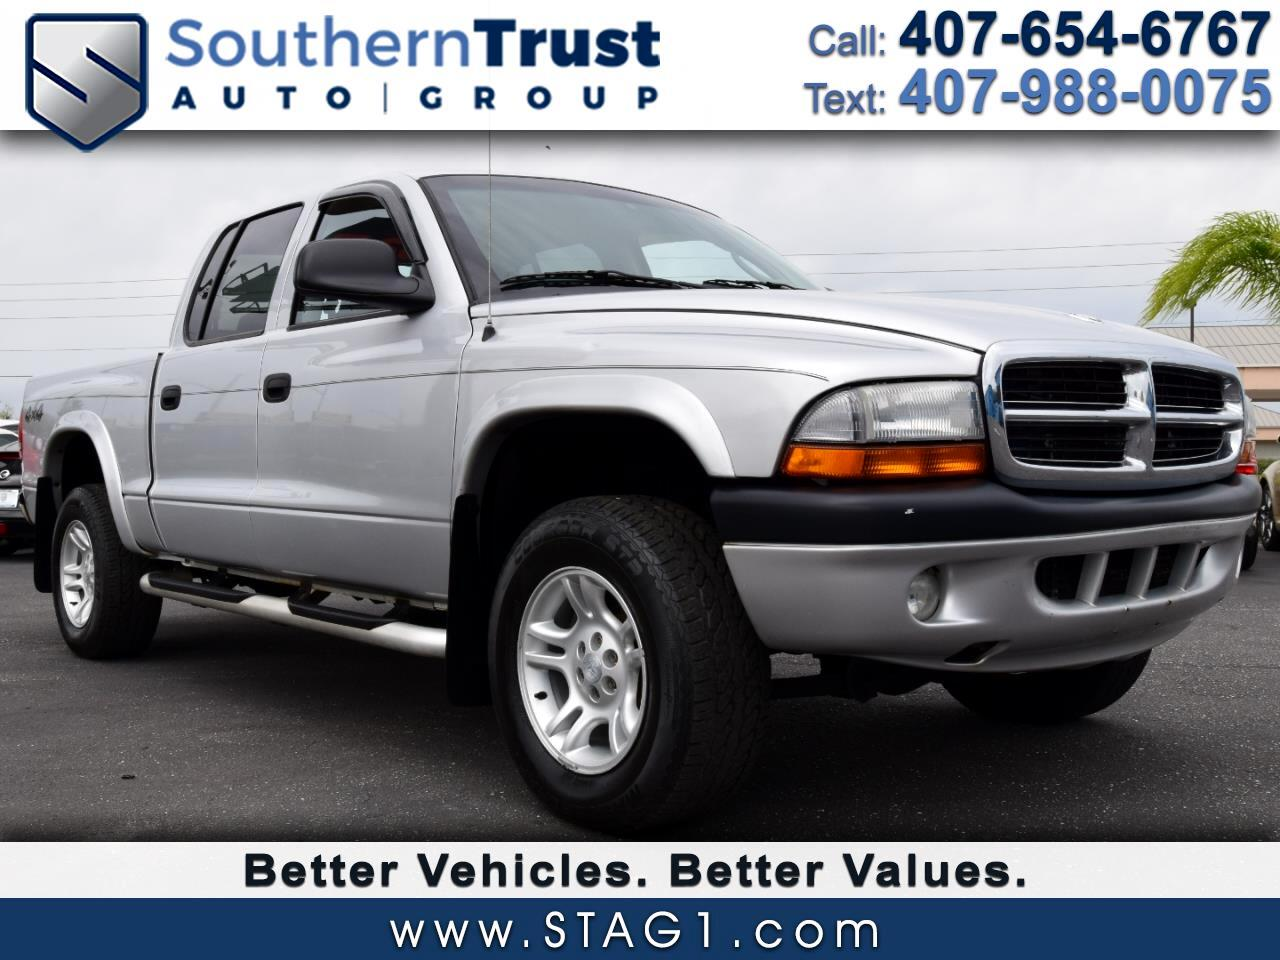 2004 Dodge Dakota 4dr Quad Cab 131